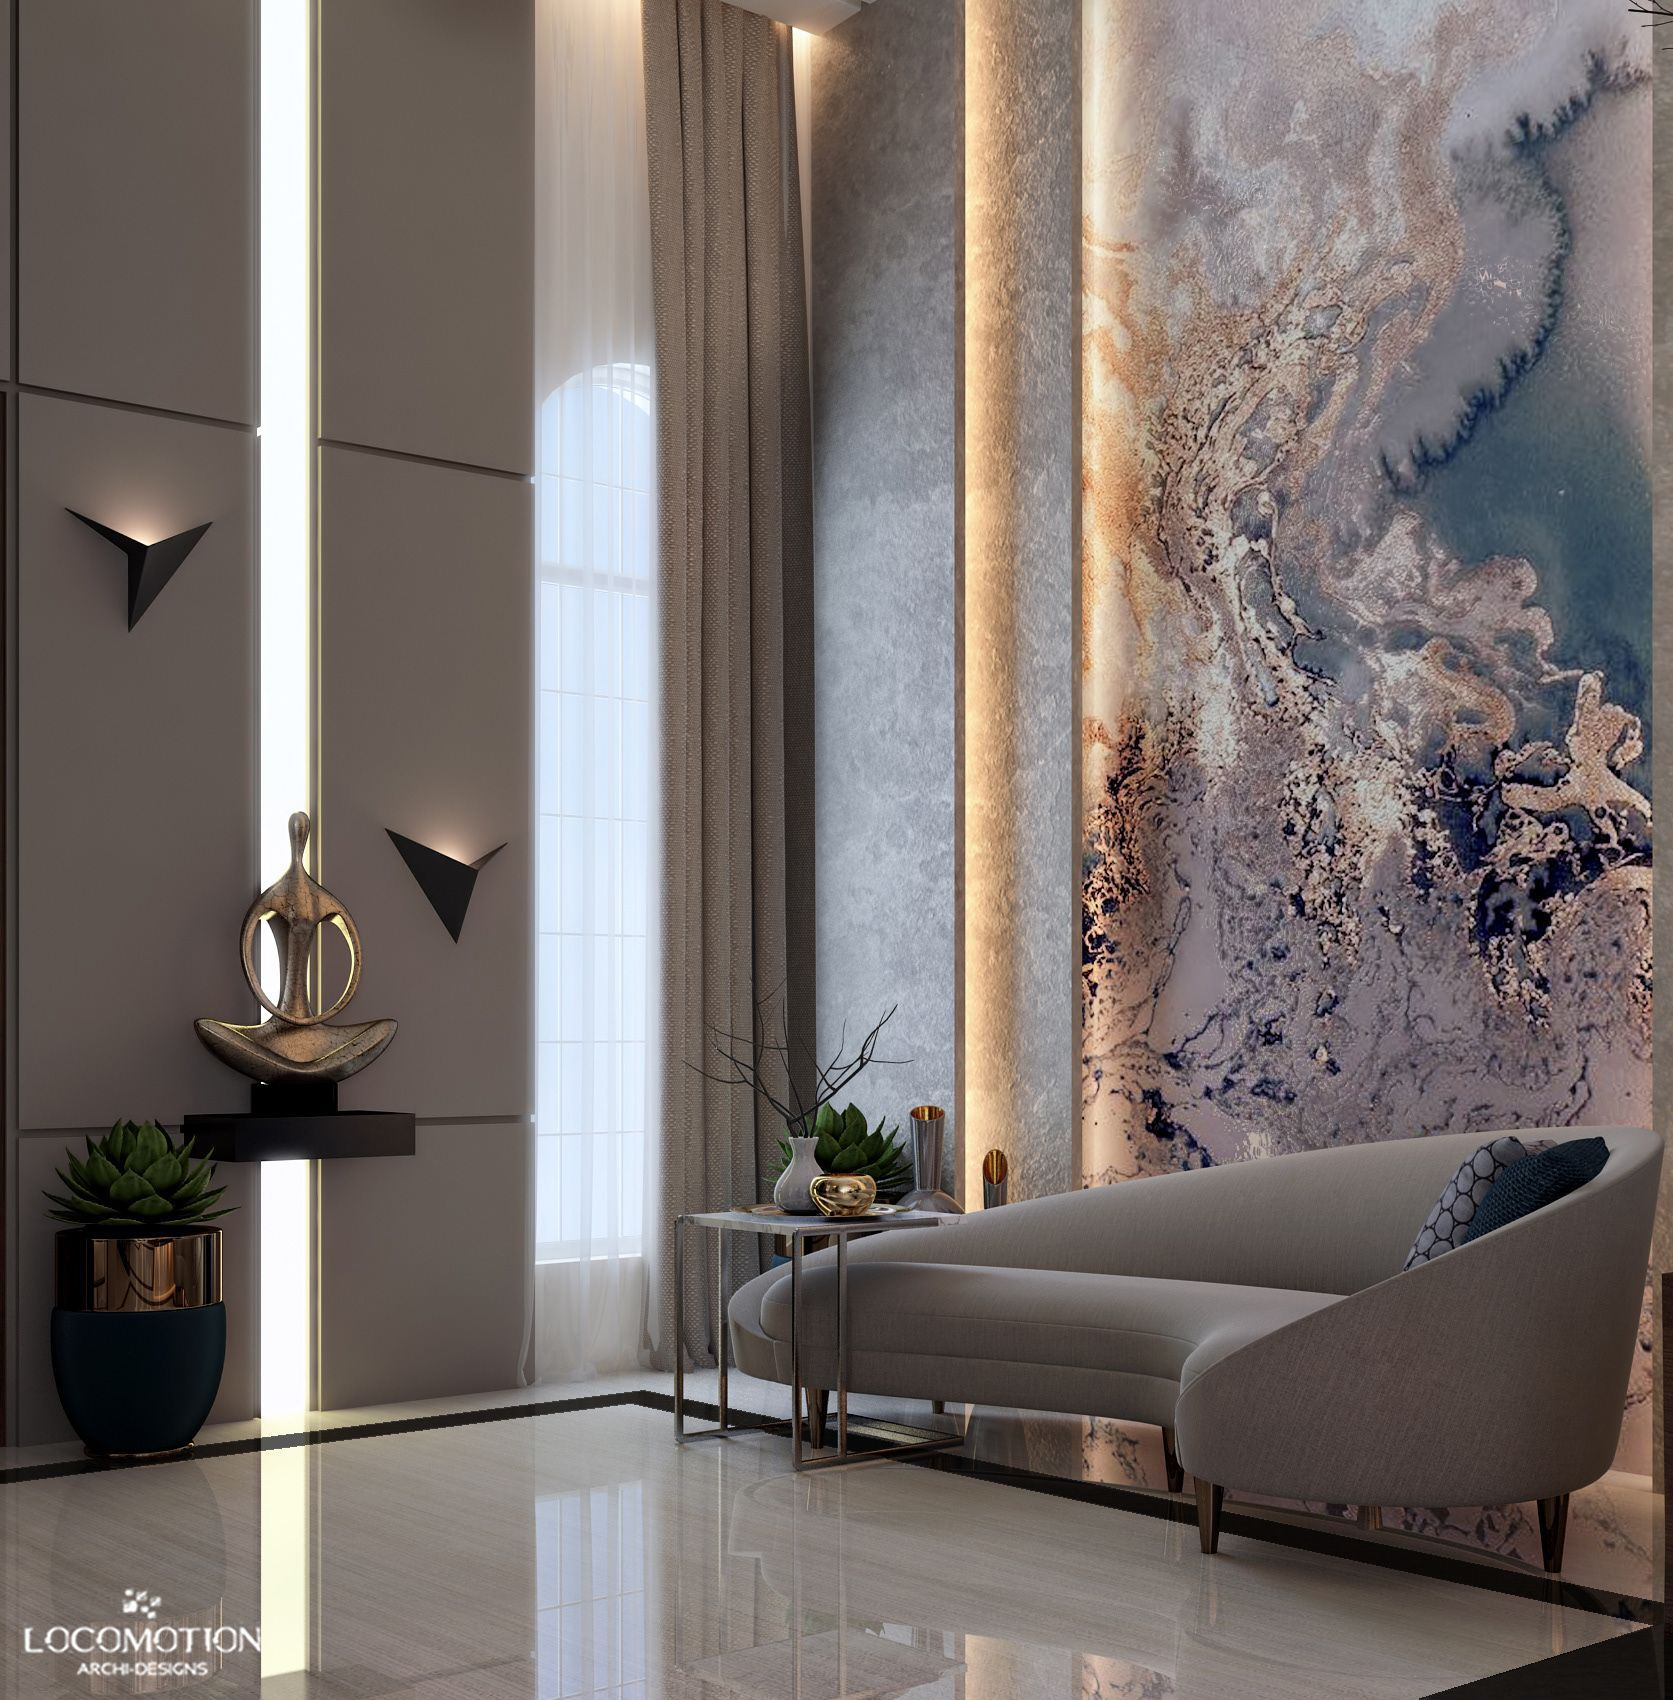 10 Admirable Find A Career In Architecture Ideas Living Room Decor Inspiration Living Room Decor Furniture Luxury Living Room Design